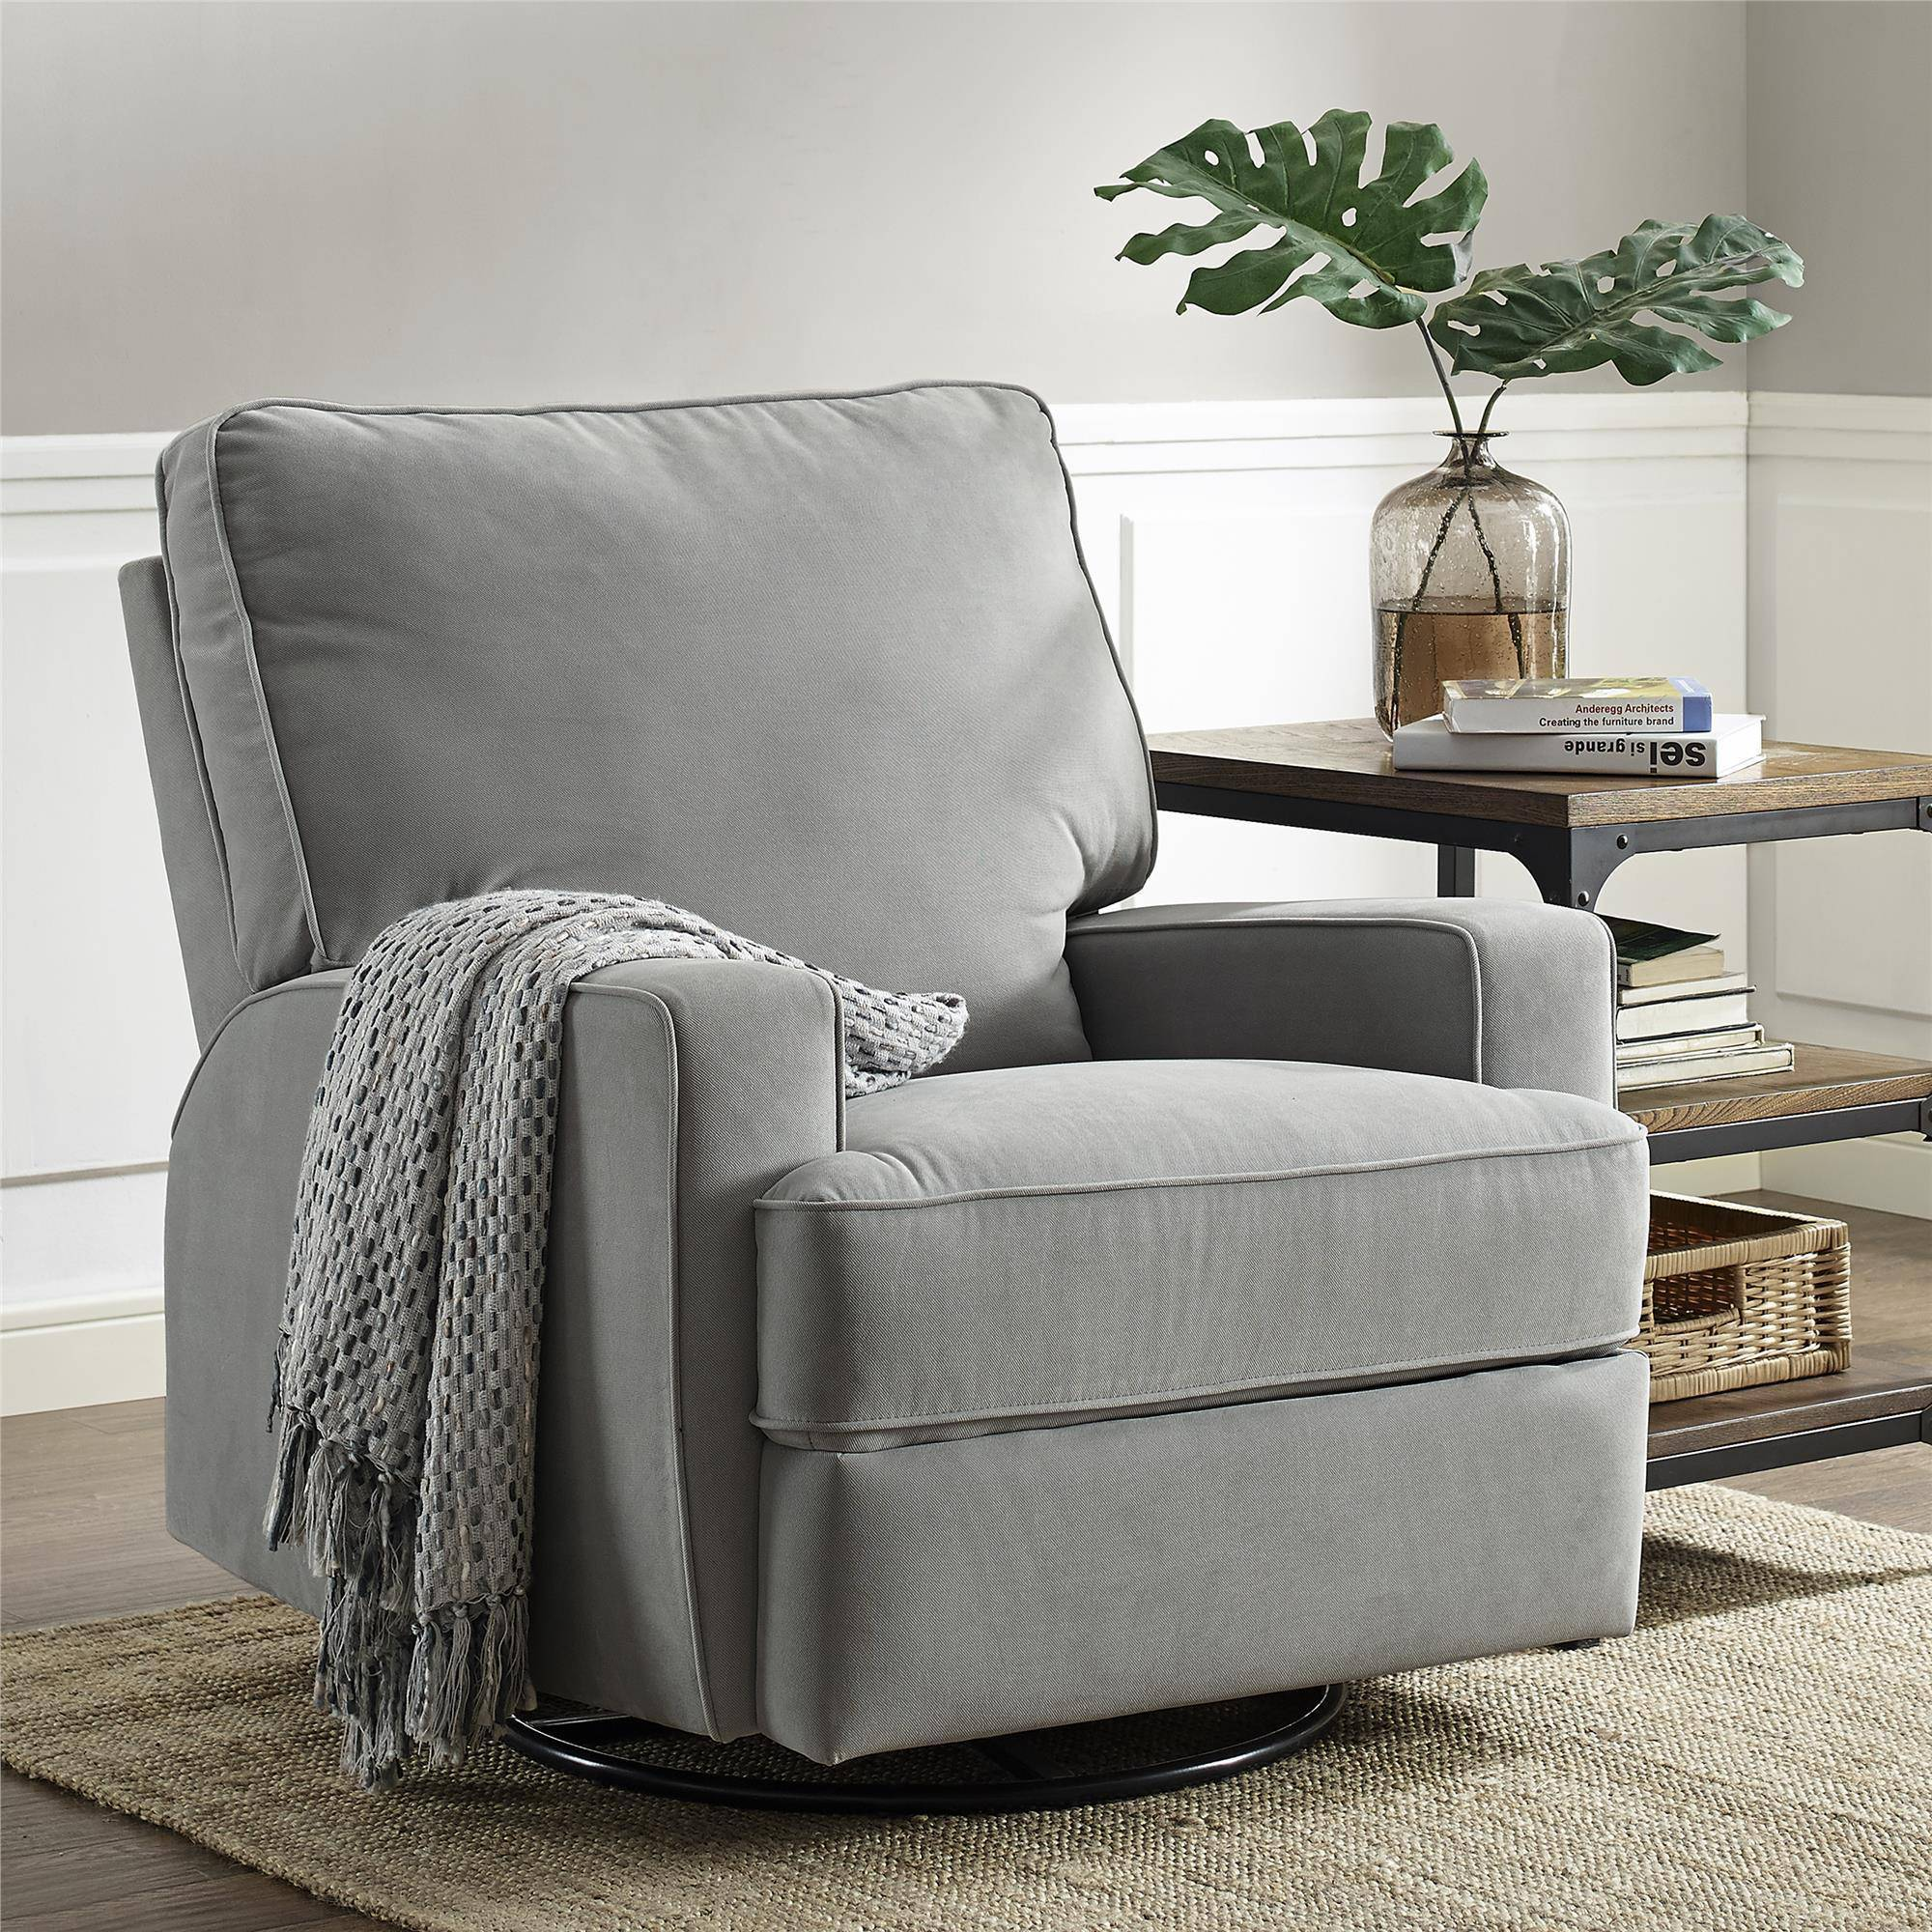 Baby Nursing Chair Details About Baby Relax Rylan Swivel Gliding Reclinergray Rocking Nursing Chair Indoor